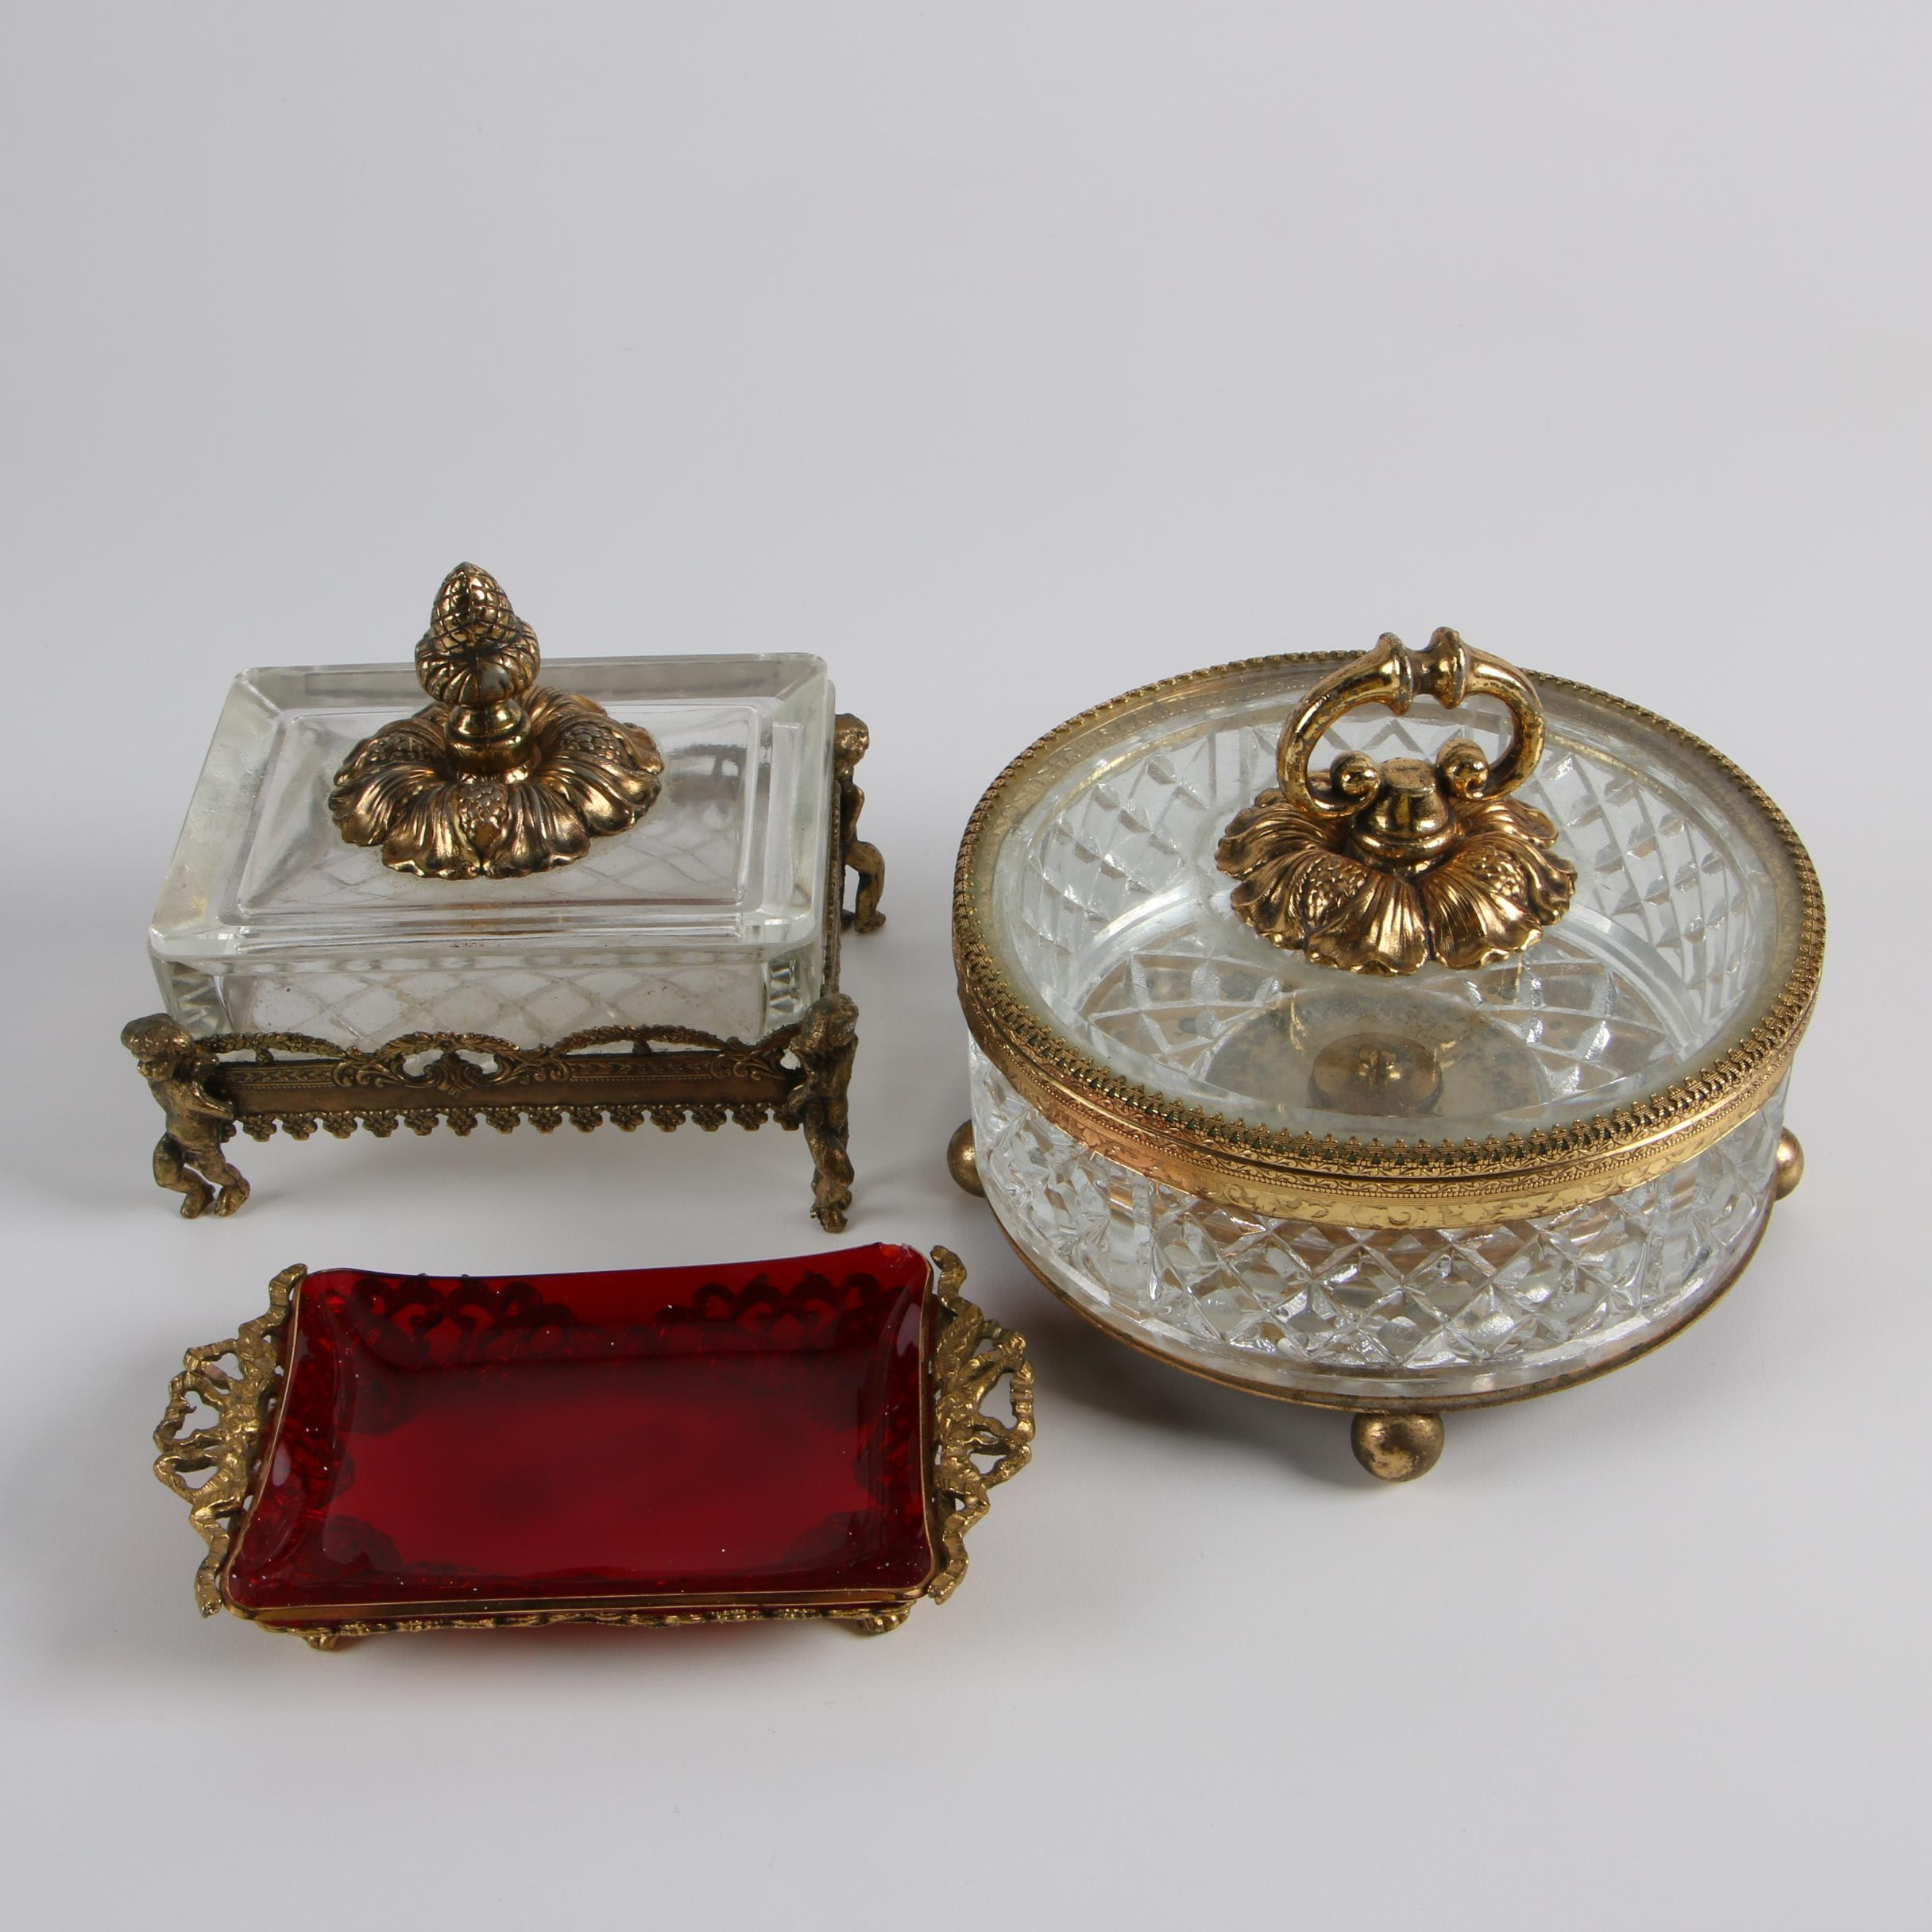 Hollywood Regency Style Glass and Metal Vanity Boxes and Soap Dish